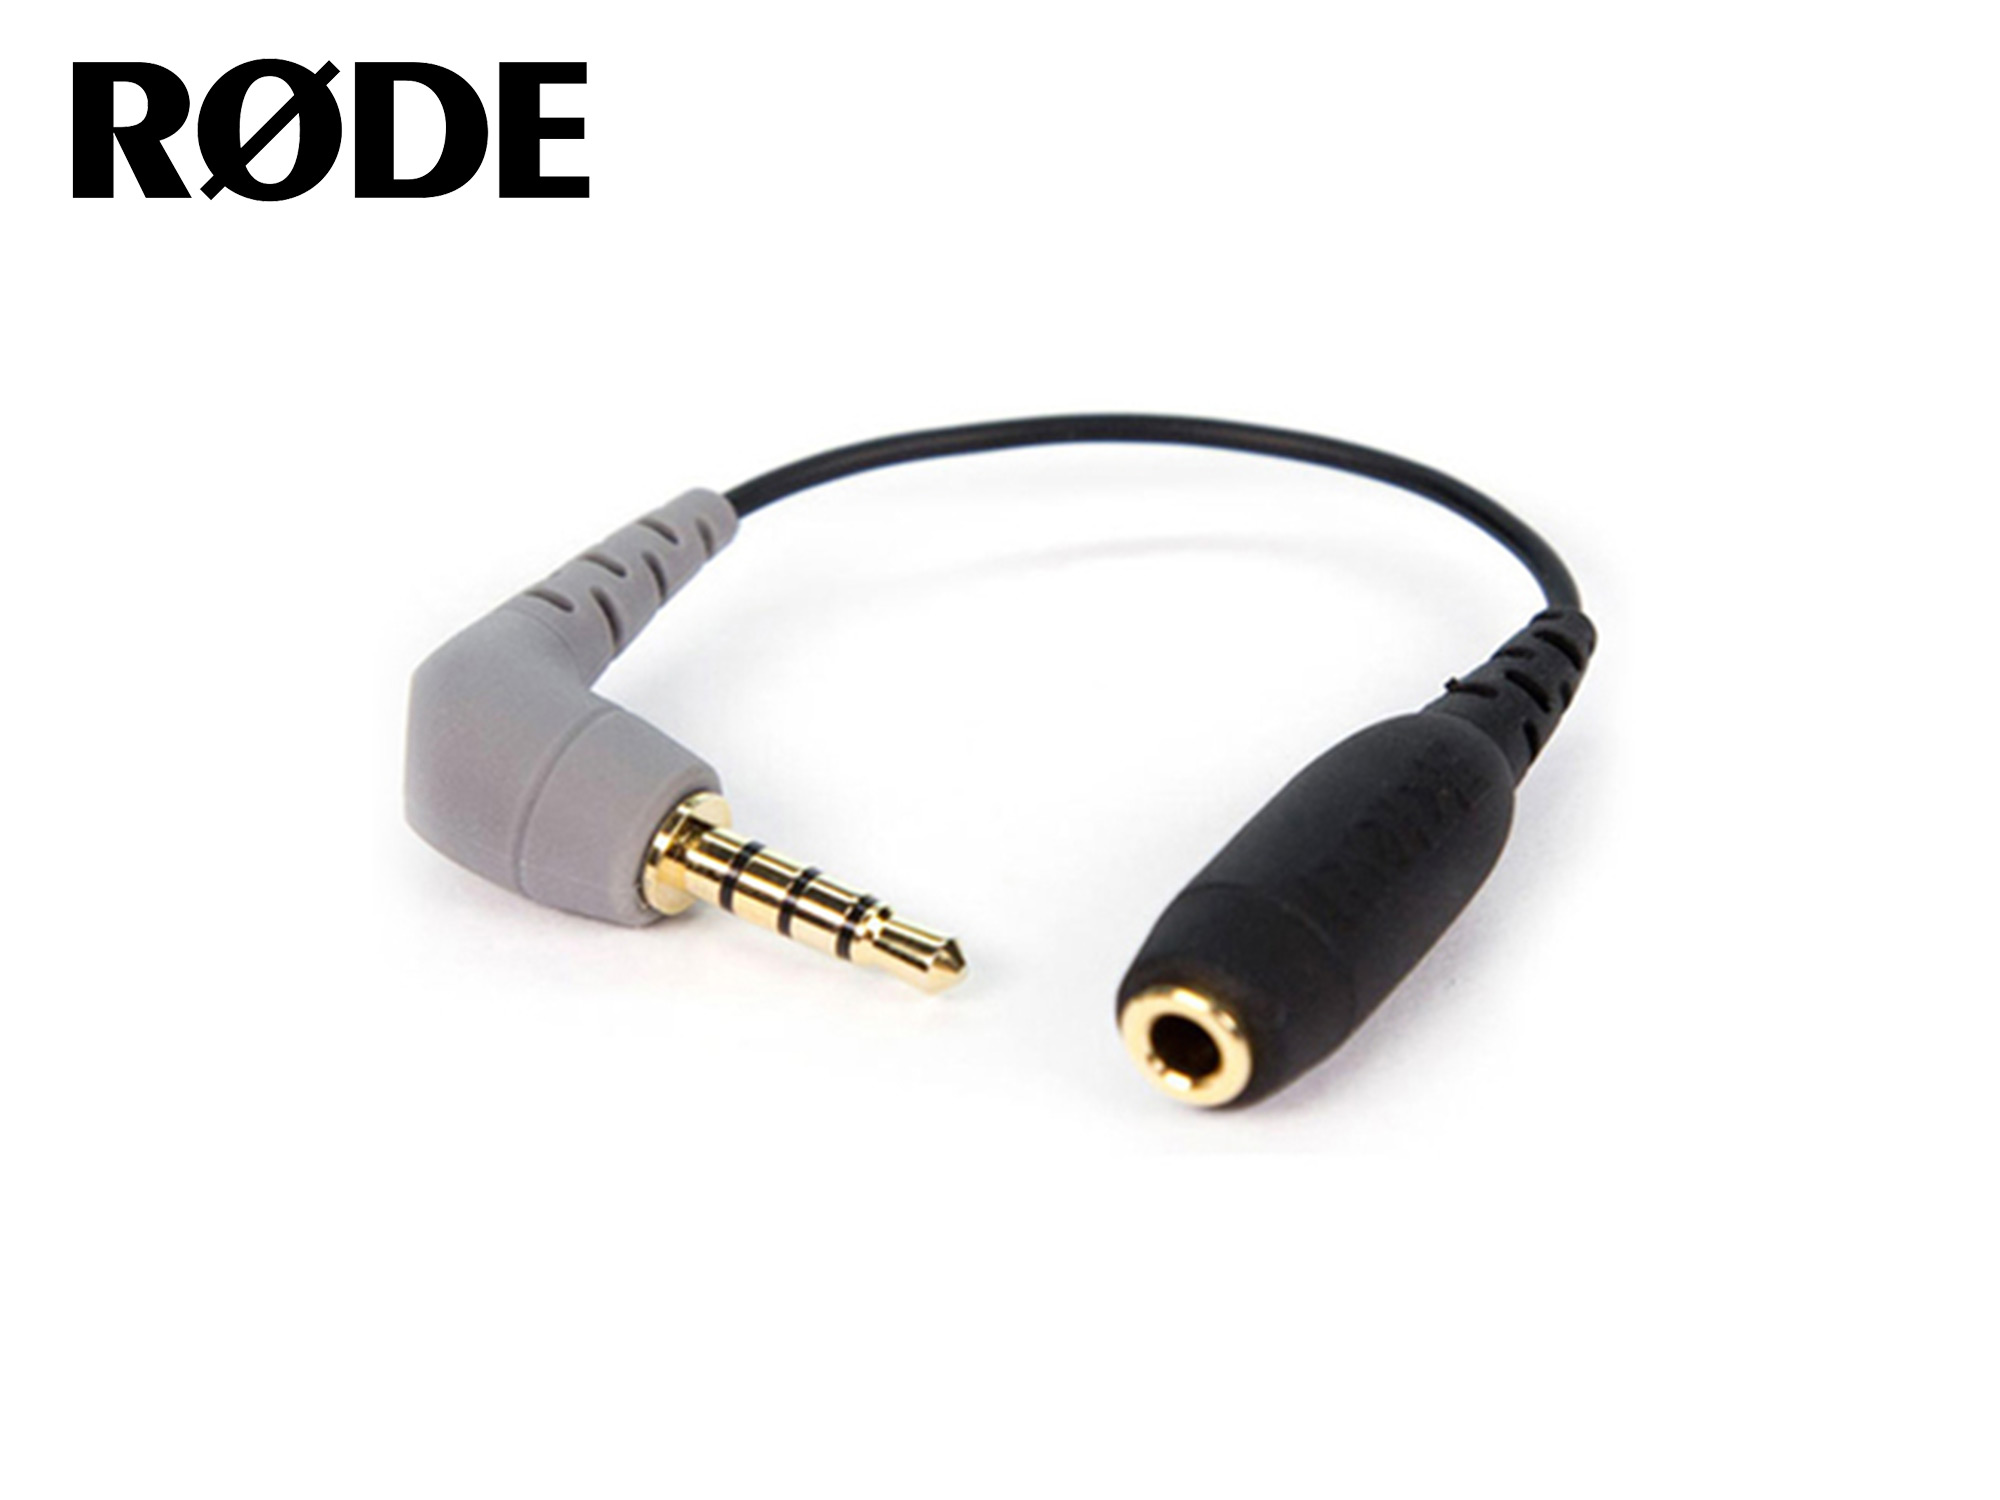 Rode SC4 3.5mm TRS Female to 3.5mm Right-Angle TRRS Male Adapter Cable for Smartphones